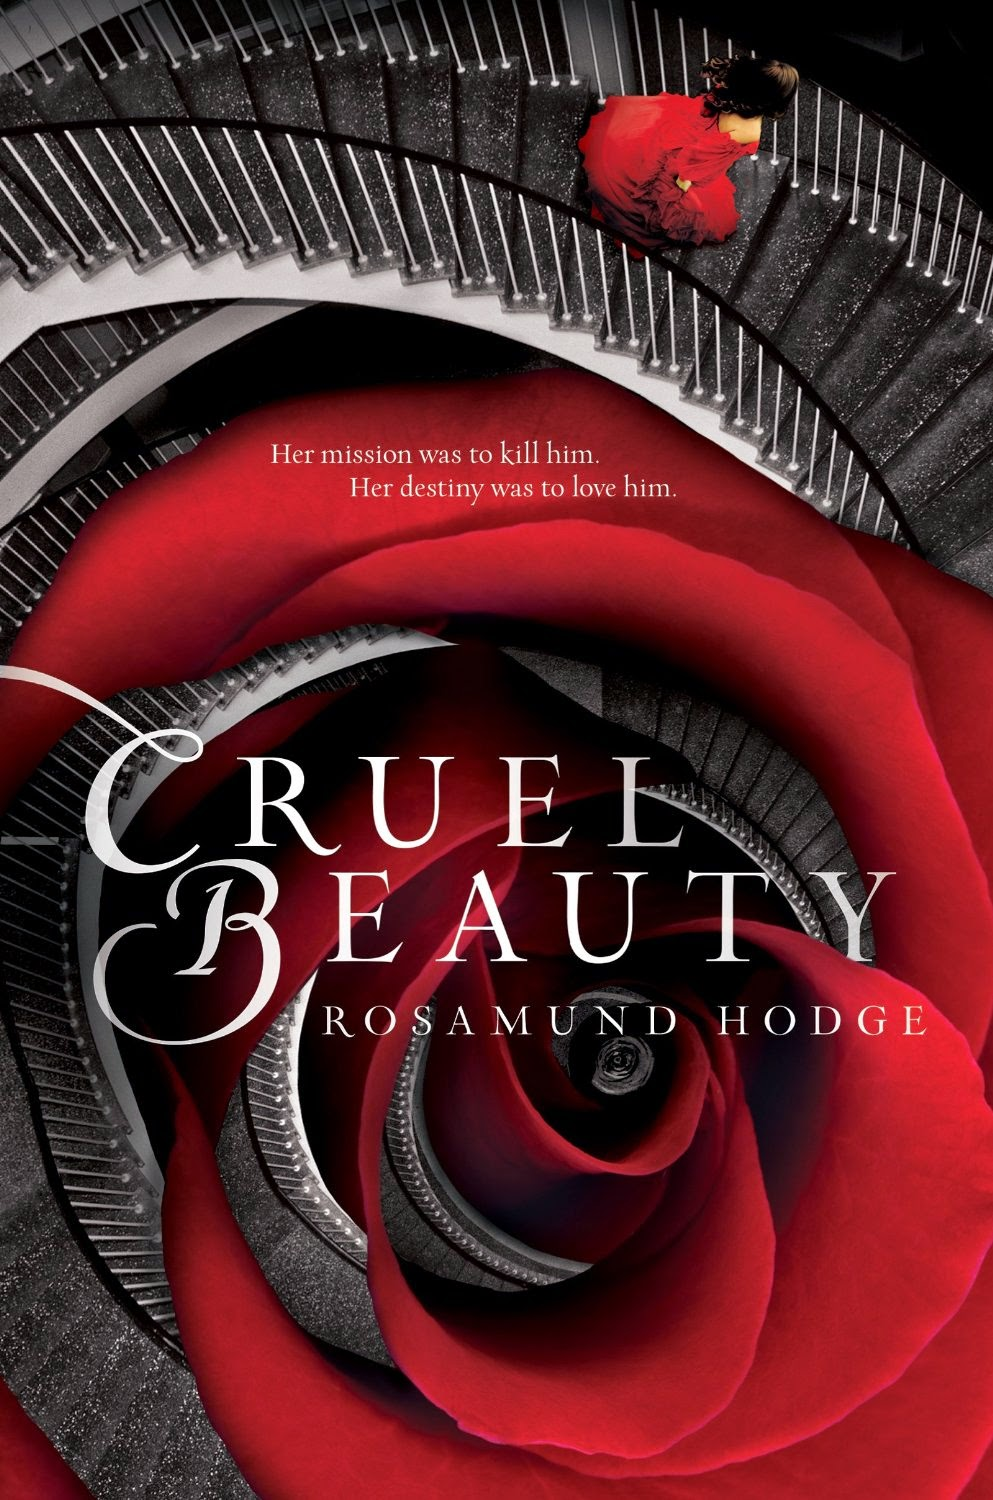 cruel beauty cover large hd by rosamund hodge, ya young adult retelling romance fantasy